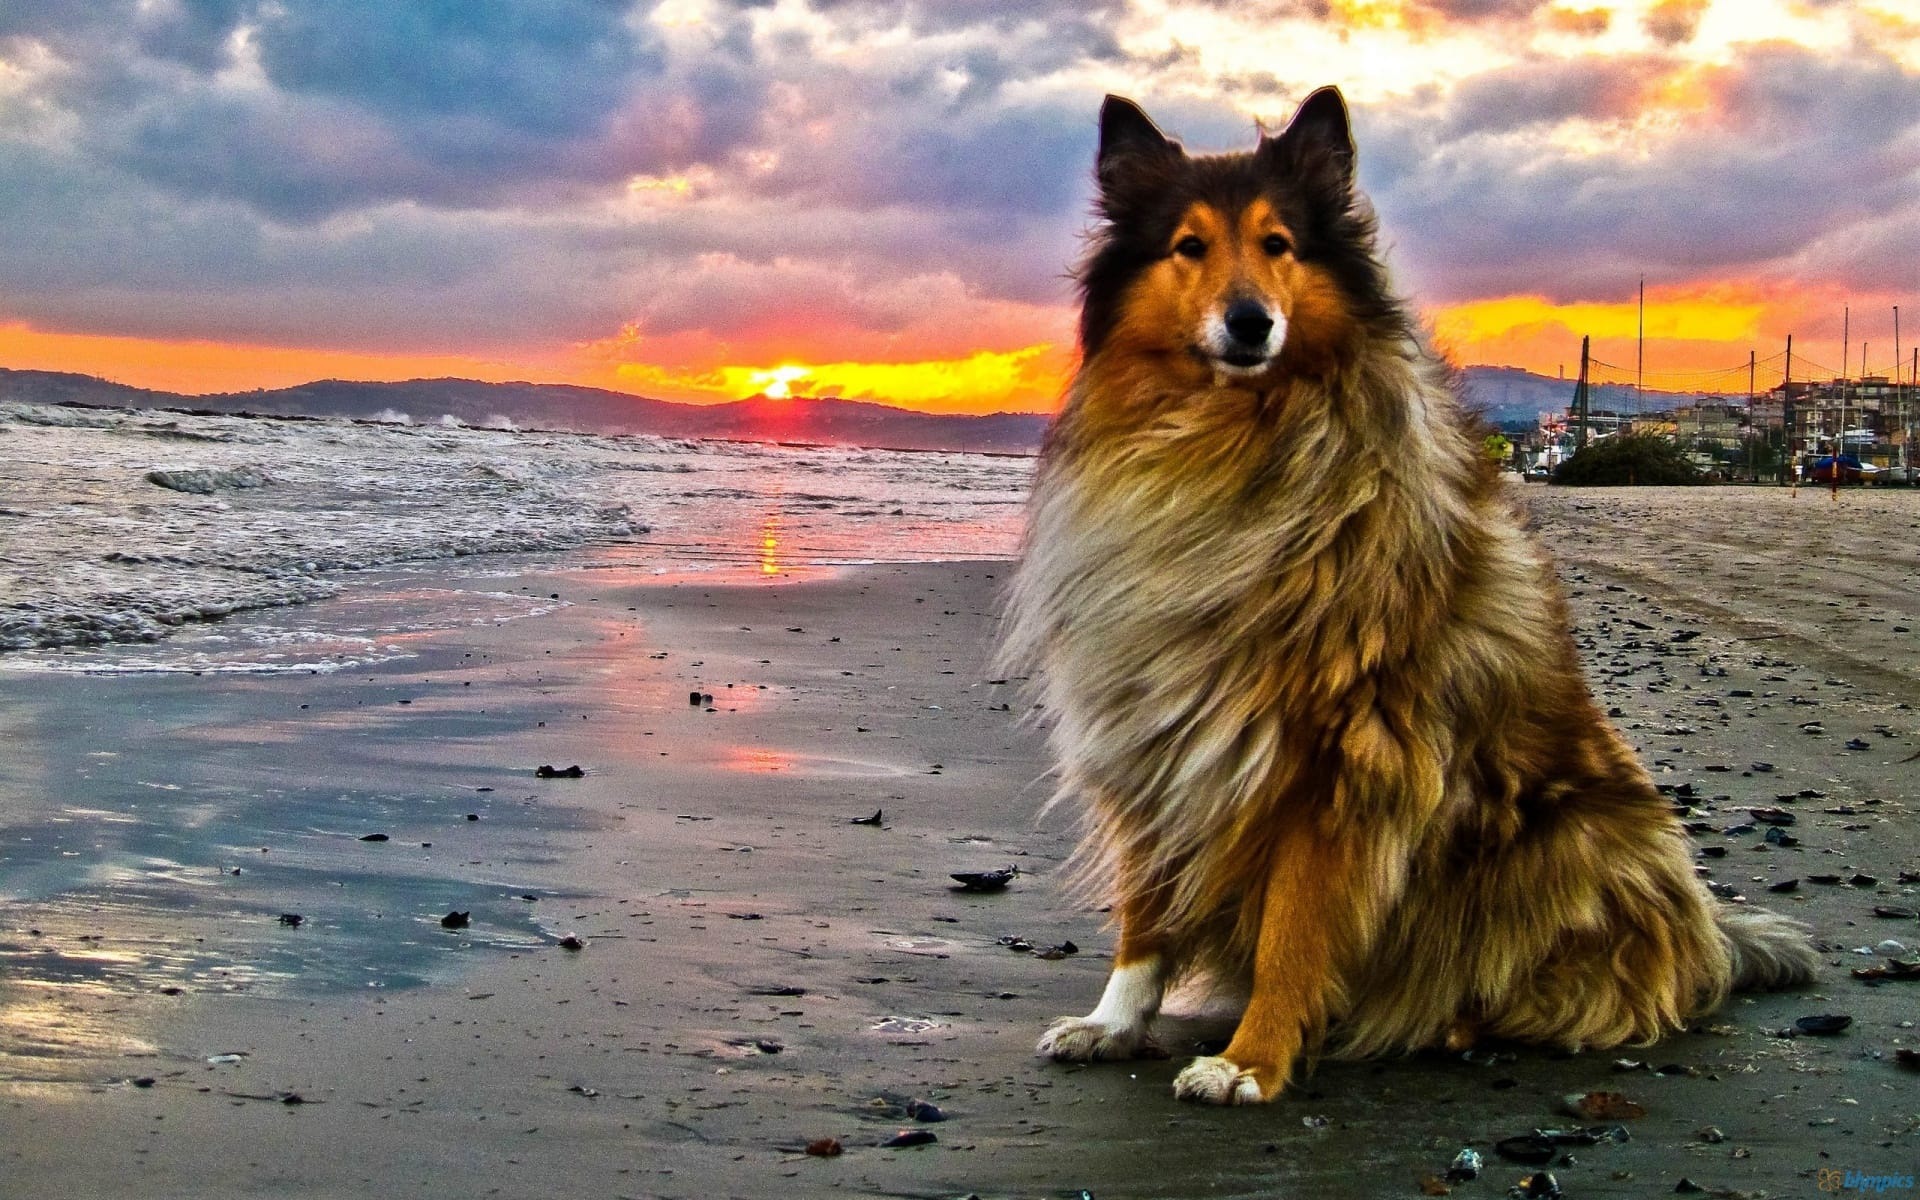 Northern Ireland County Drops Plans to Ban Dogs from Beach